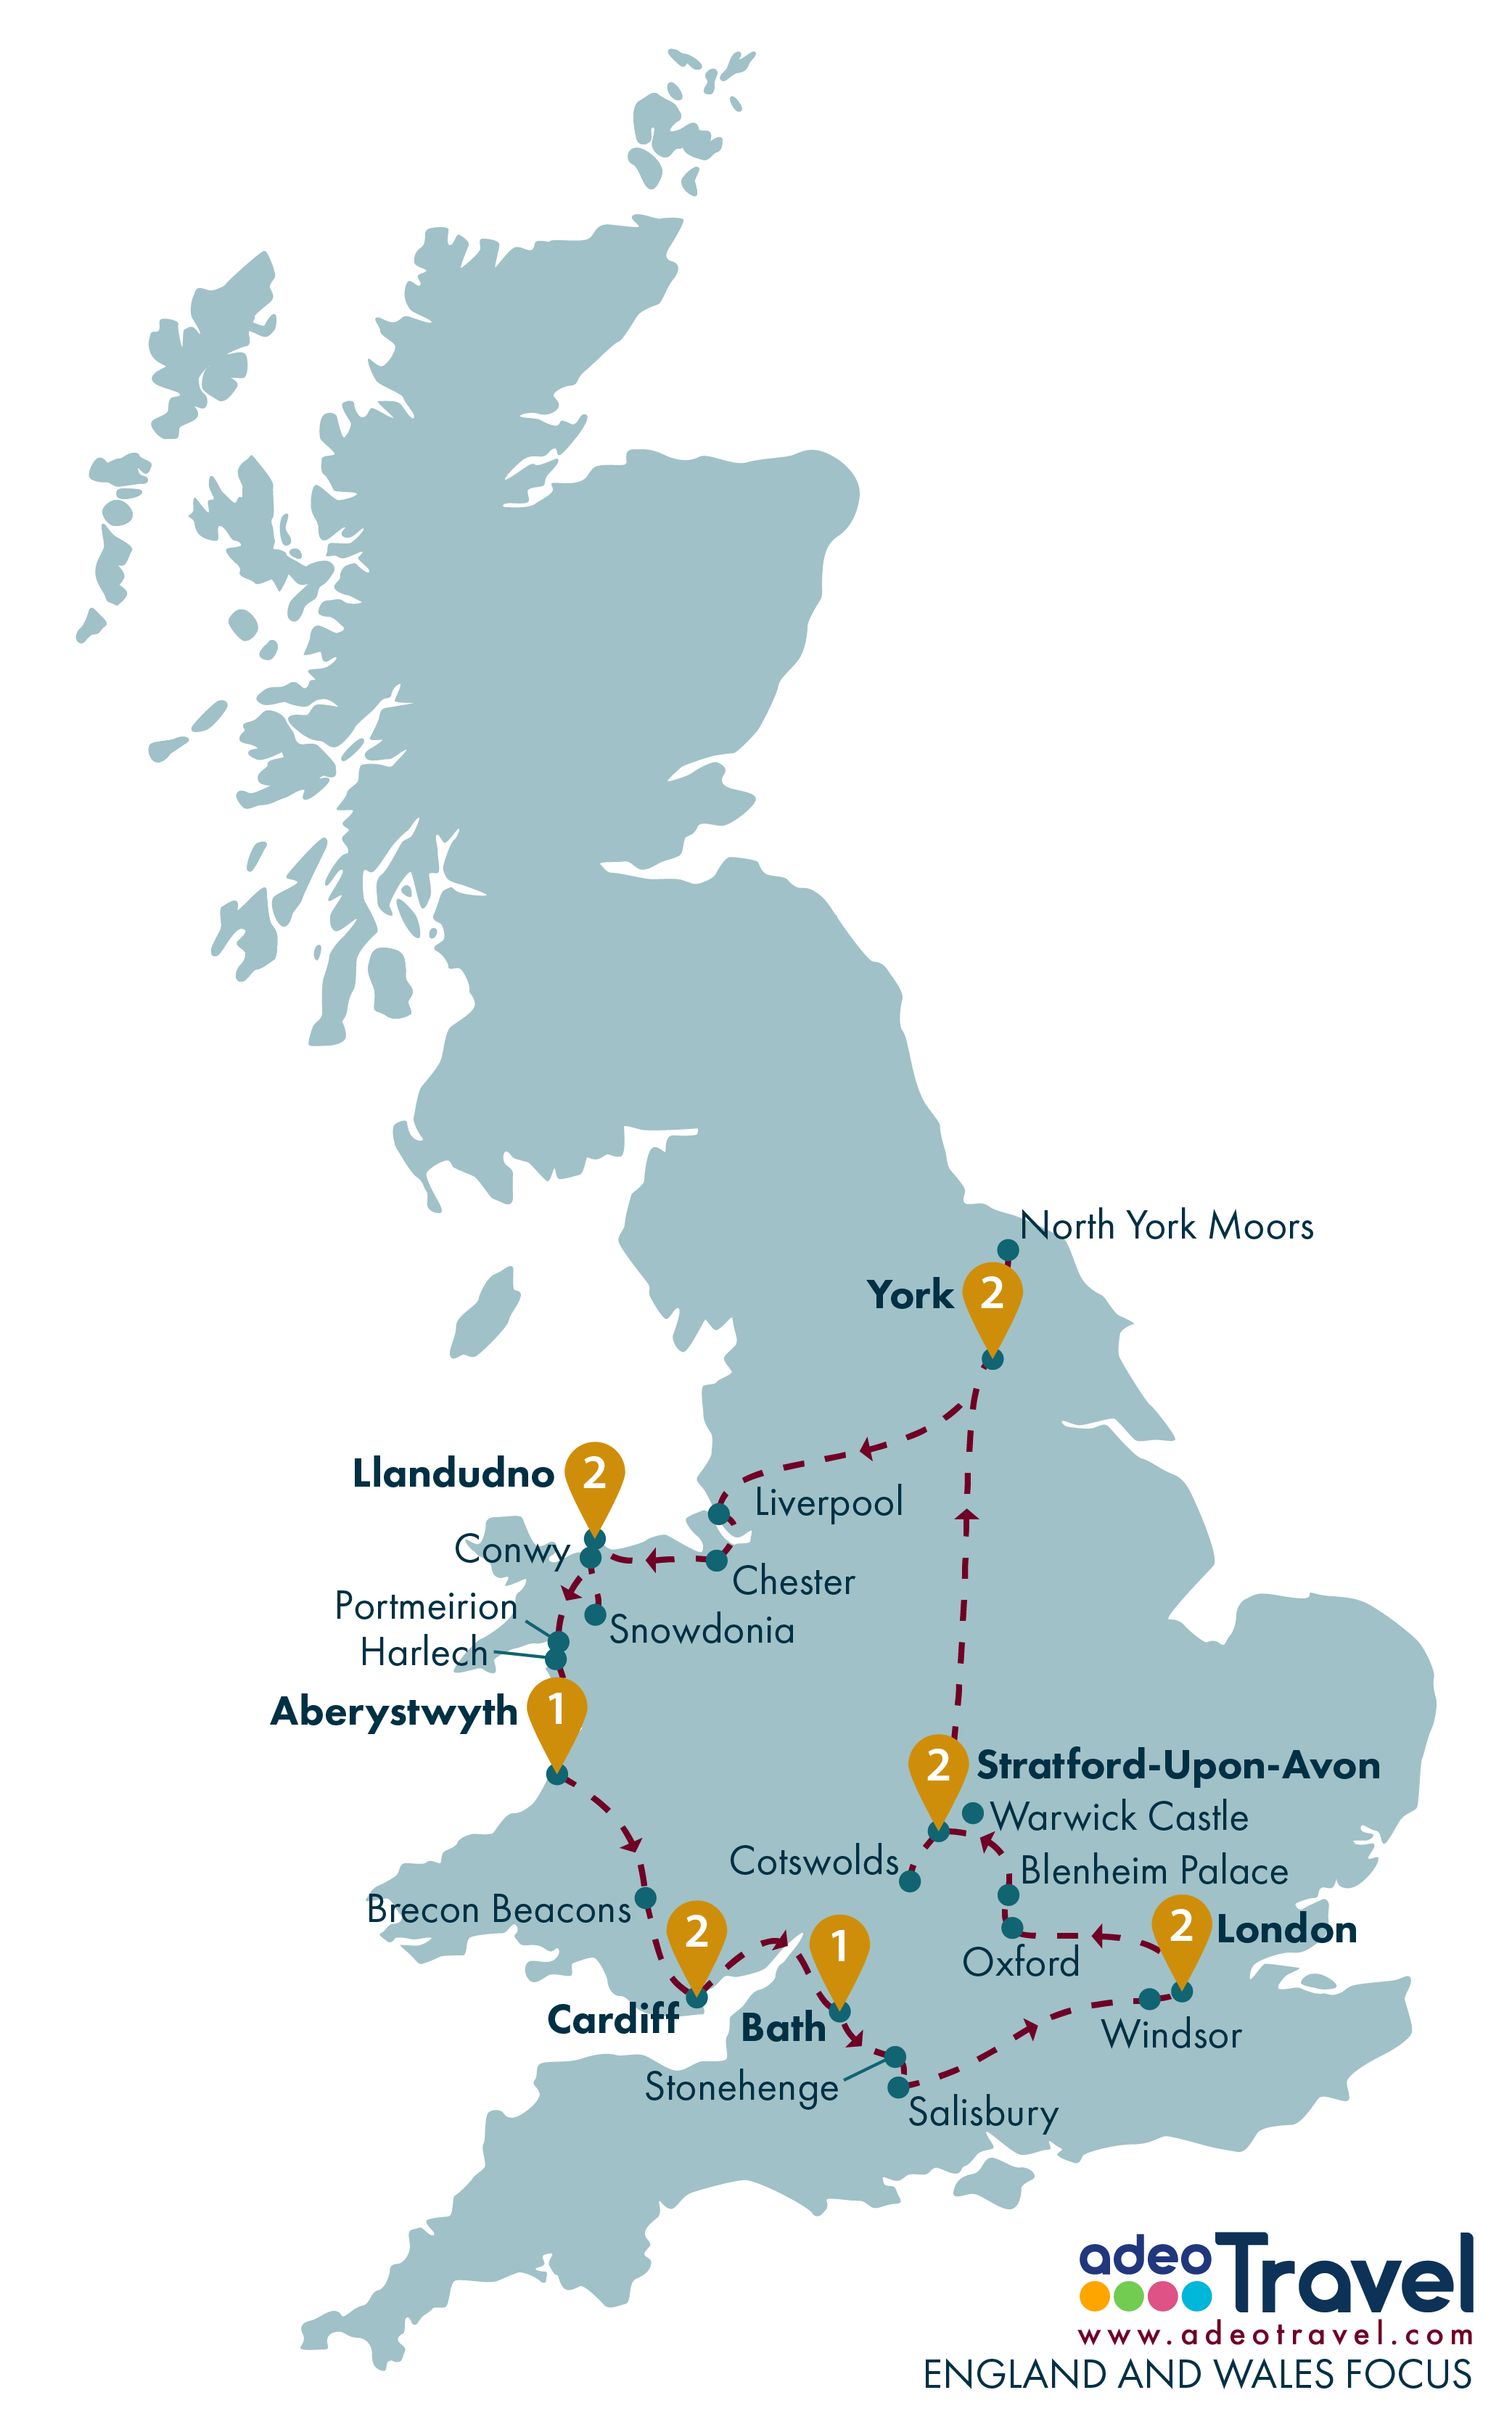 Map Of England And Wales.England And Wales Focus Adeo Travel England And Wales Driving Tour